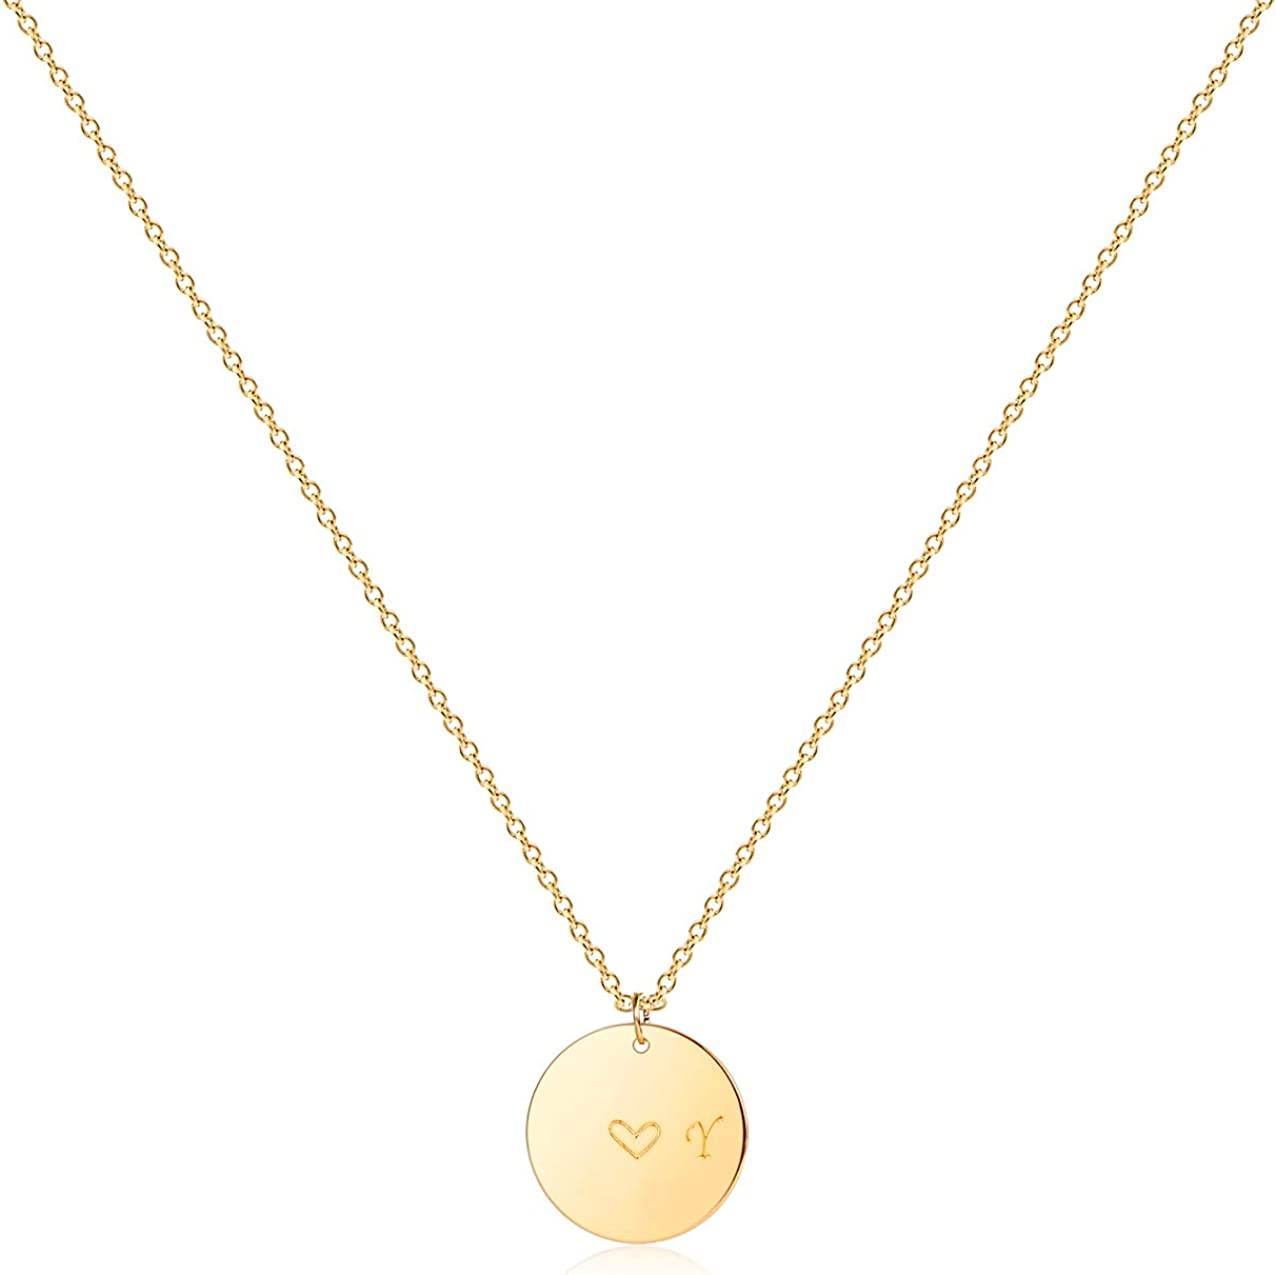 Valentines Gift 14K Gold fill or Rose Gold fill or 925 Sterling Silver Double Heart Necklace Personalized Initial Heart Jewelry